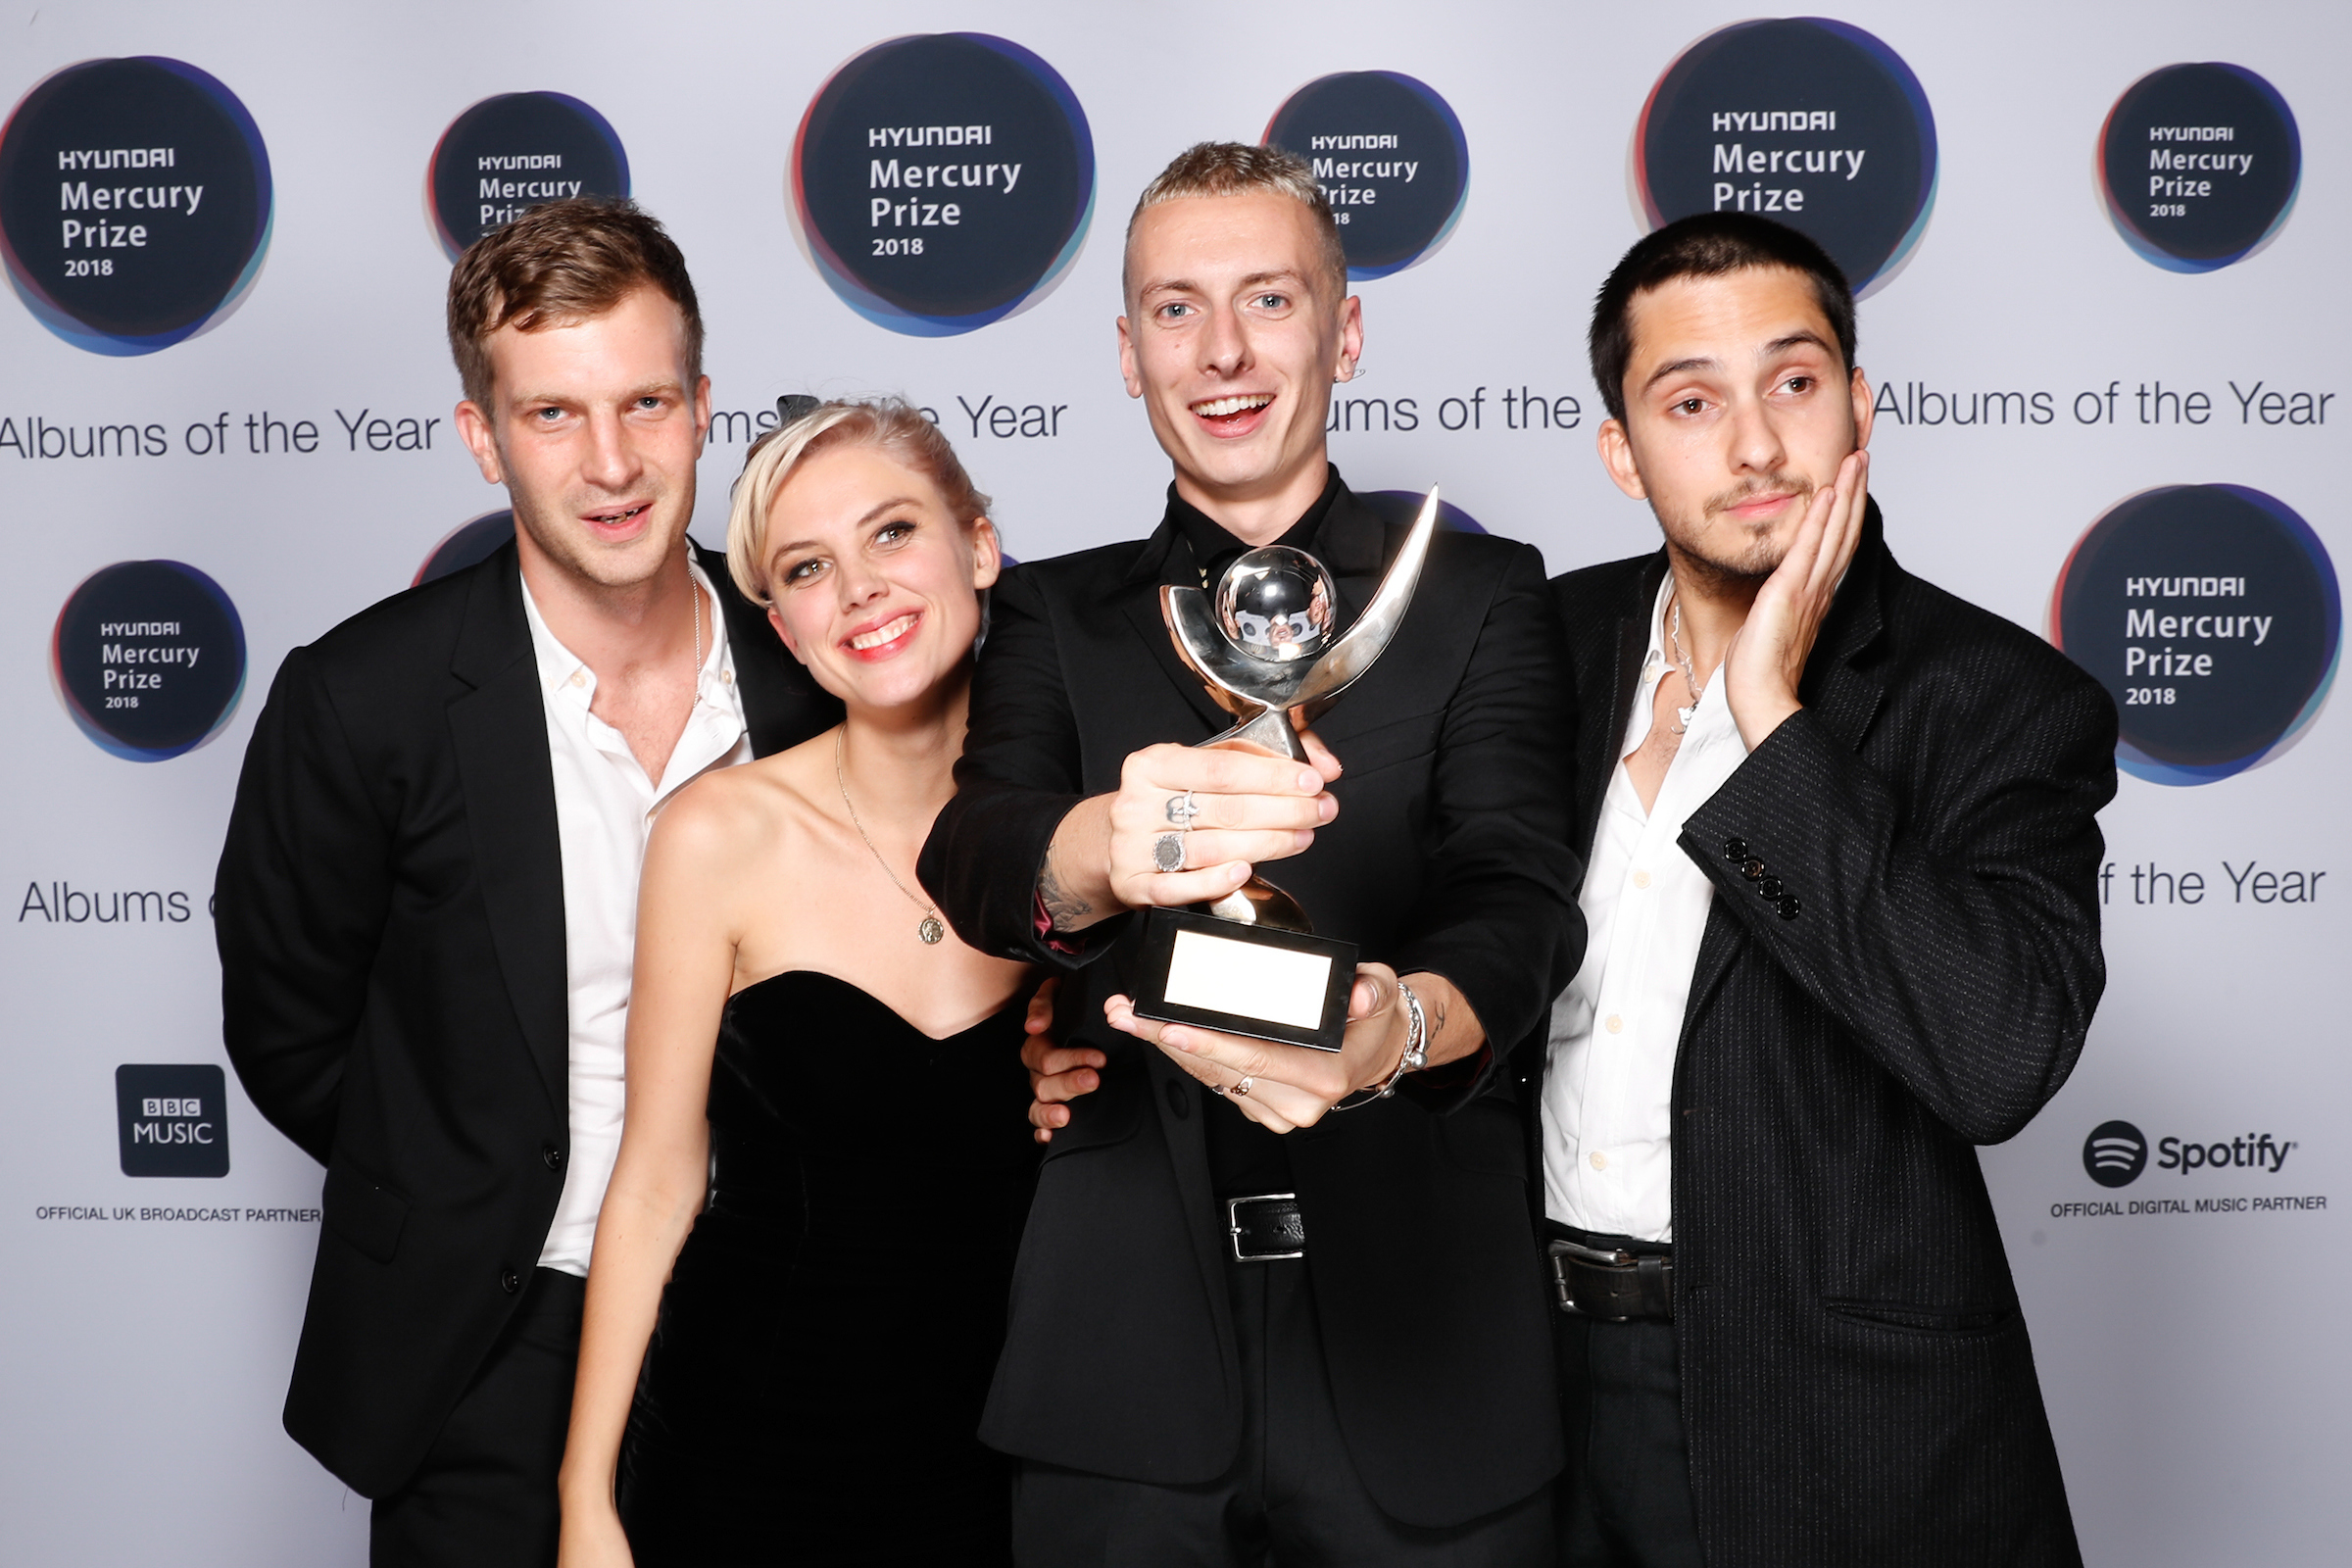 WOLF ALICE TAKE HOME THE 2018 MERCURY PRIZE FOR VISIONS OF A LIFE